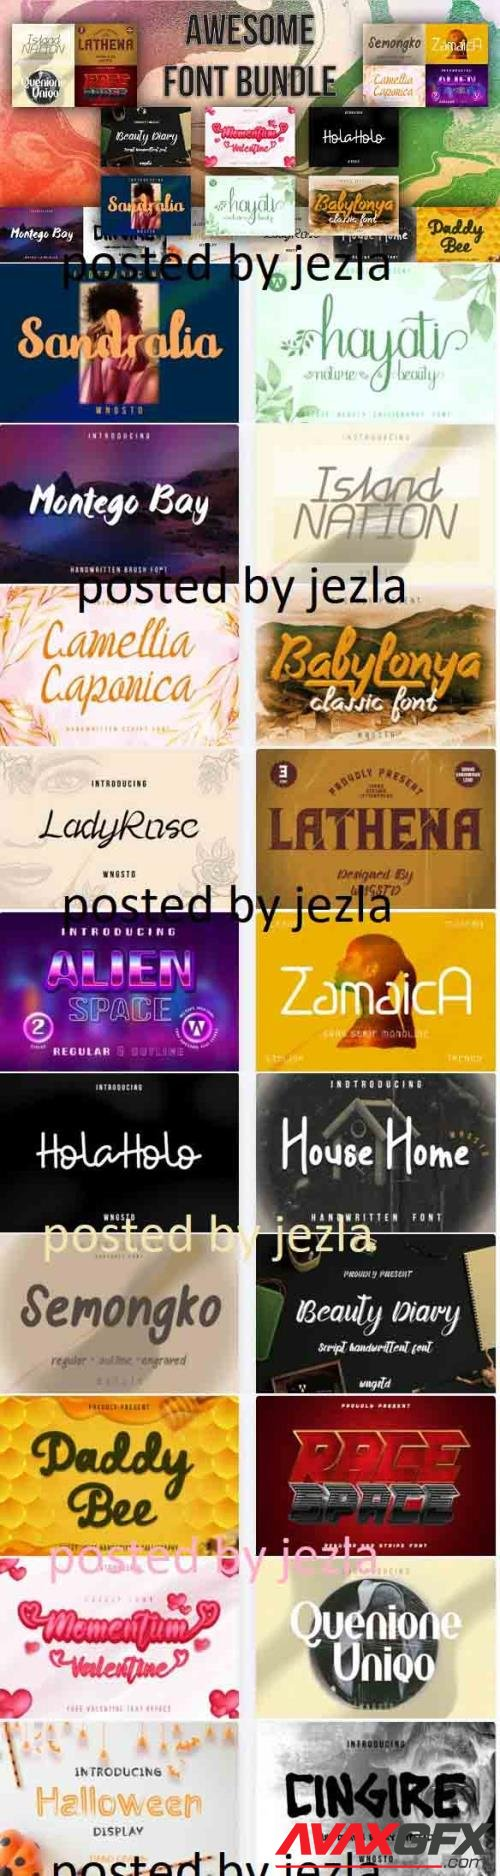 Awesome Fonts Bundle - 20 Premium Fonts